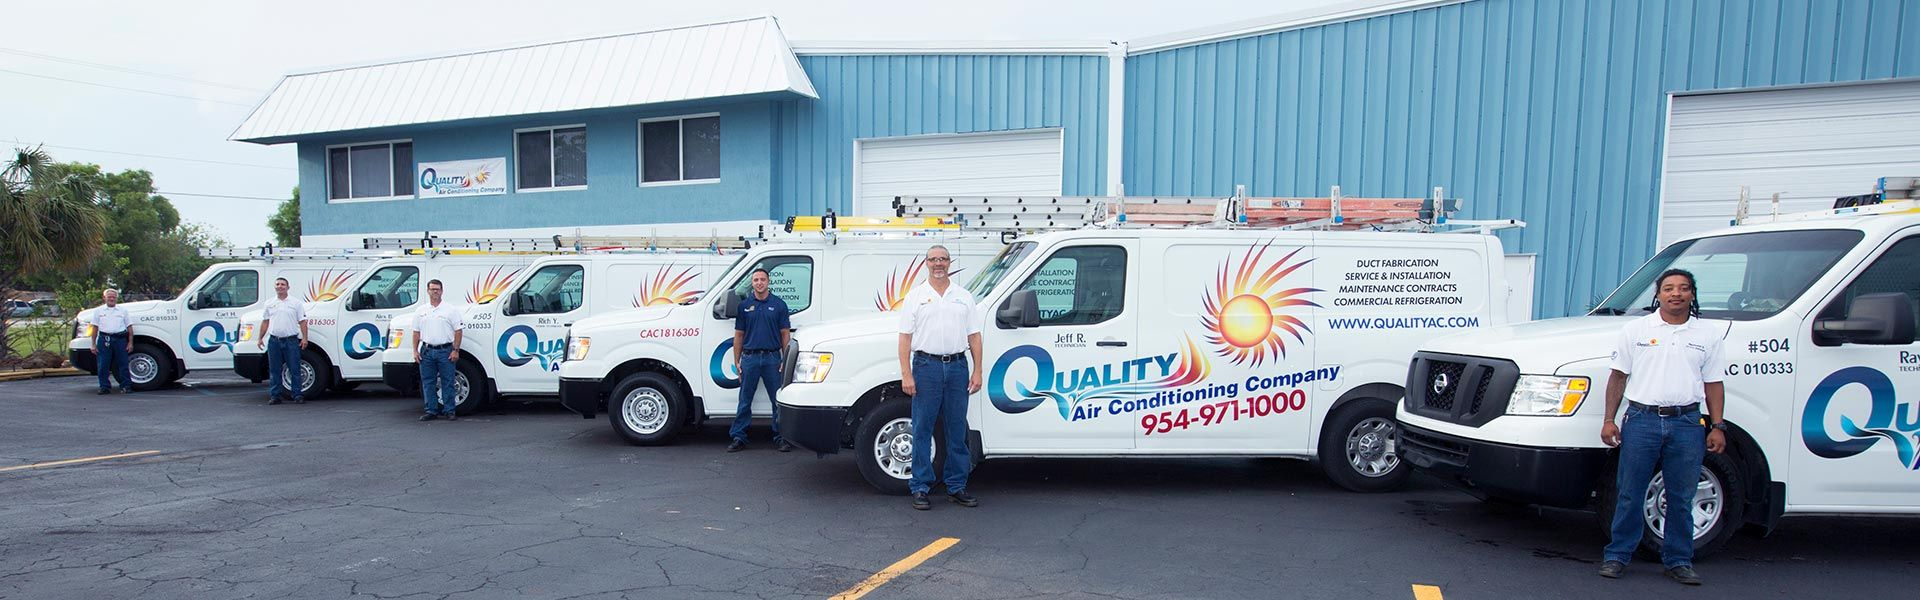 Air Conditioning Installation, Sales, Service, Maintenance, Fleet Team Shot, Serving Fort Lauderdale to Delray Beach, FL